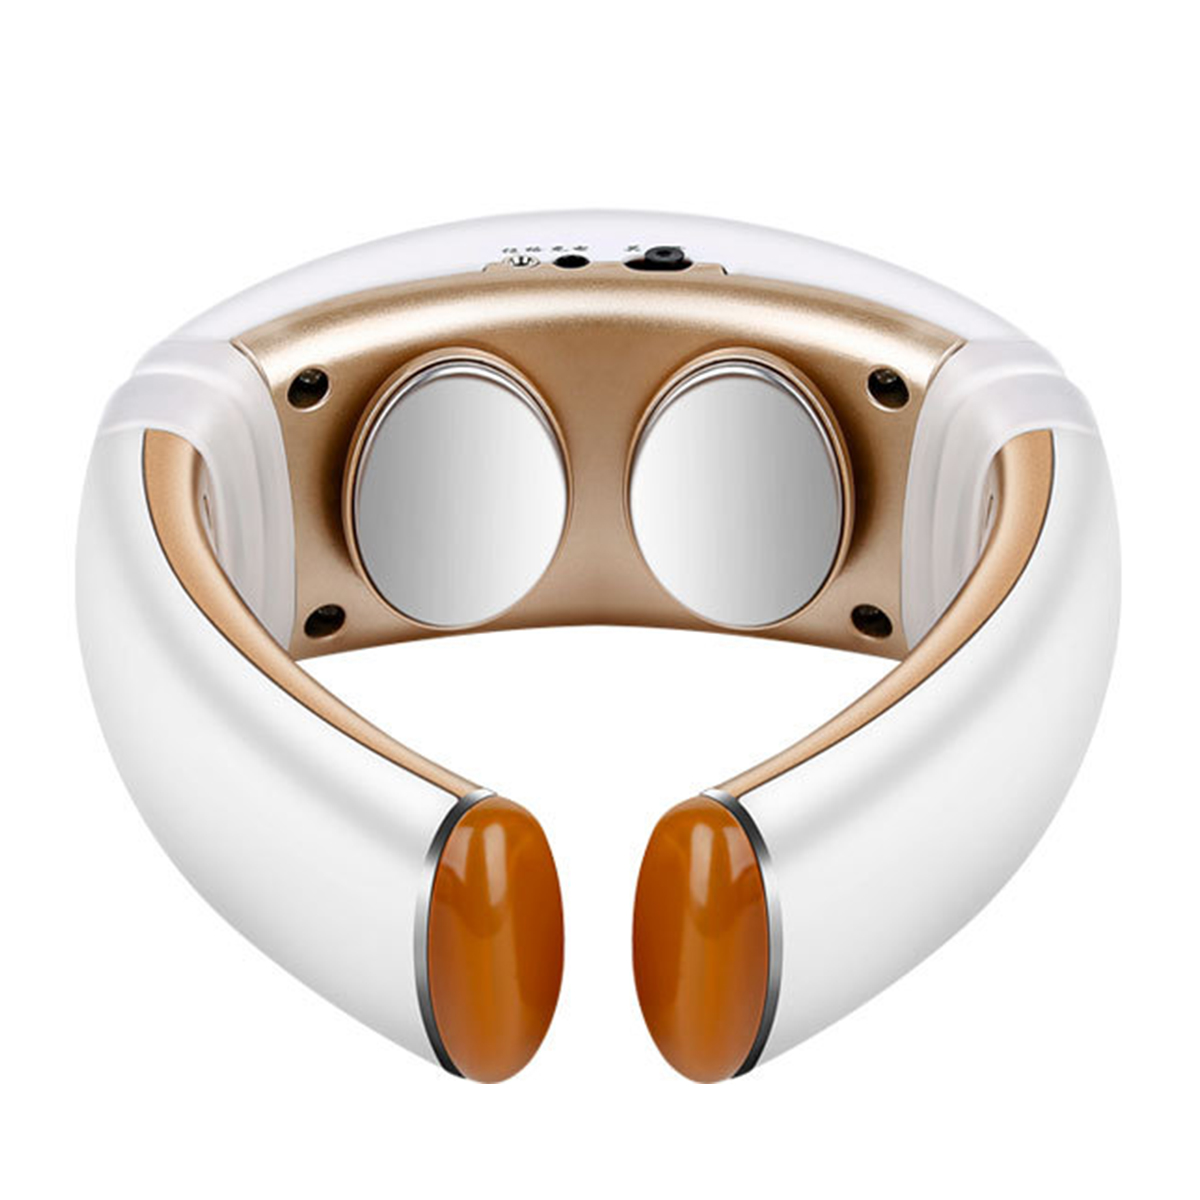 3D Smart Neck Massager Heating Pain Relief Treatment Acupuncture Electric Pulse